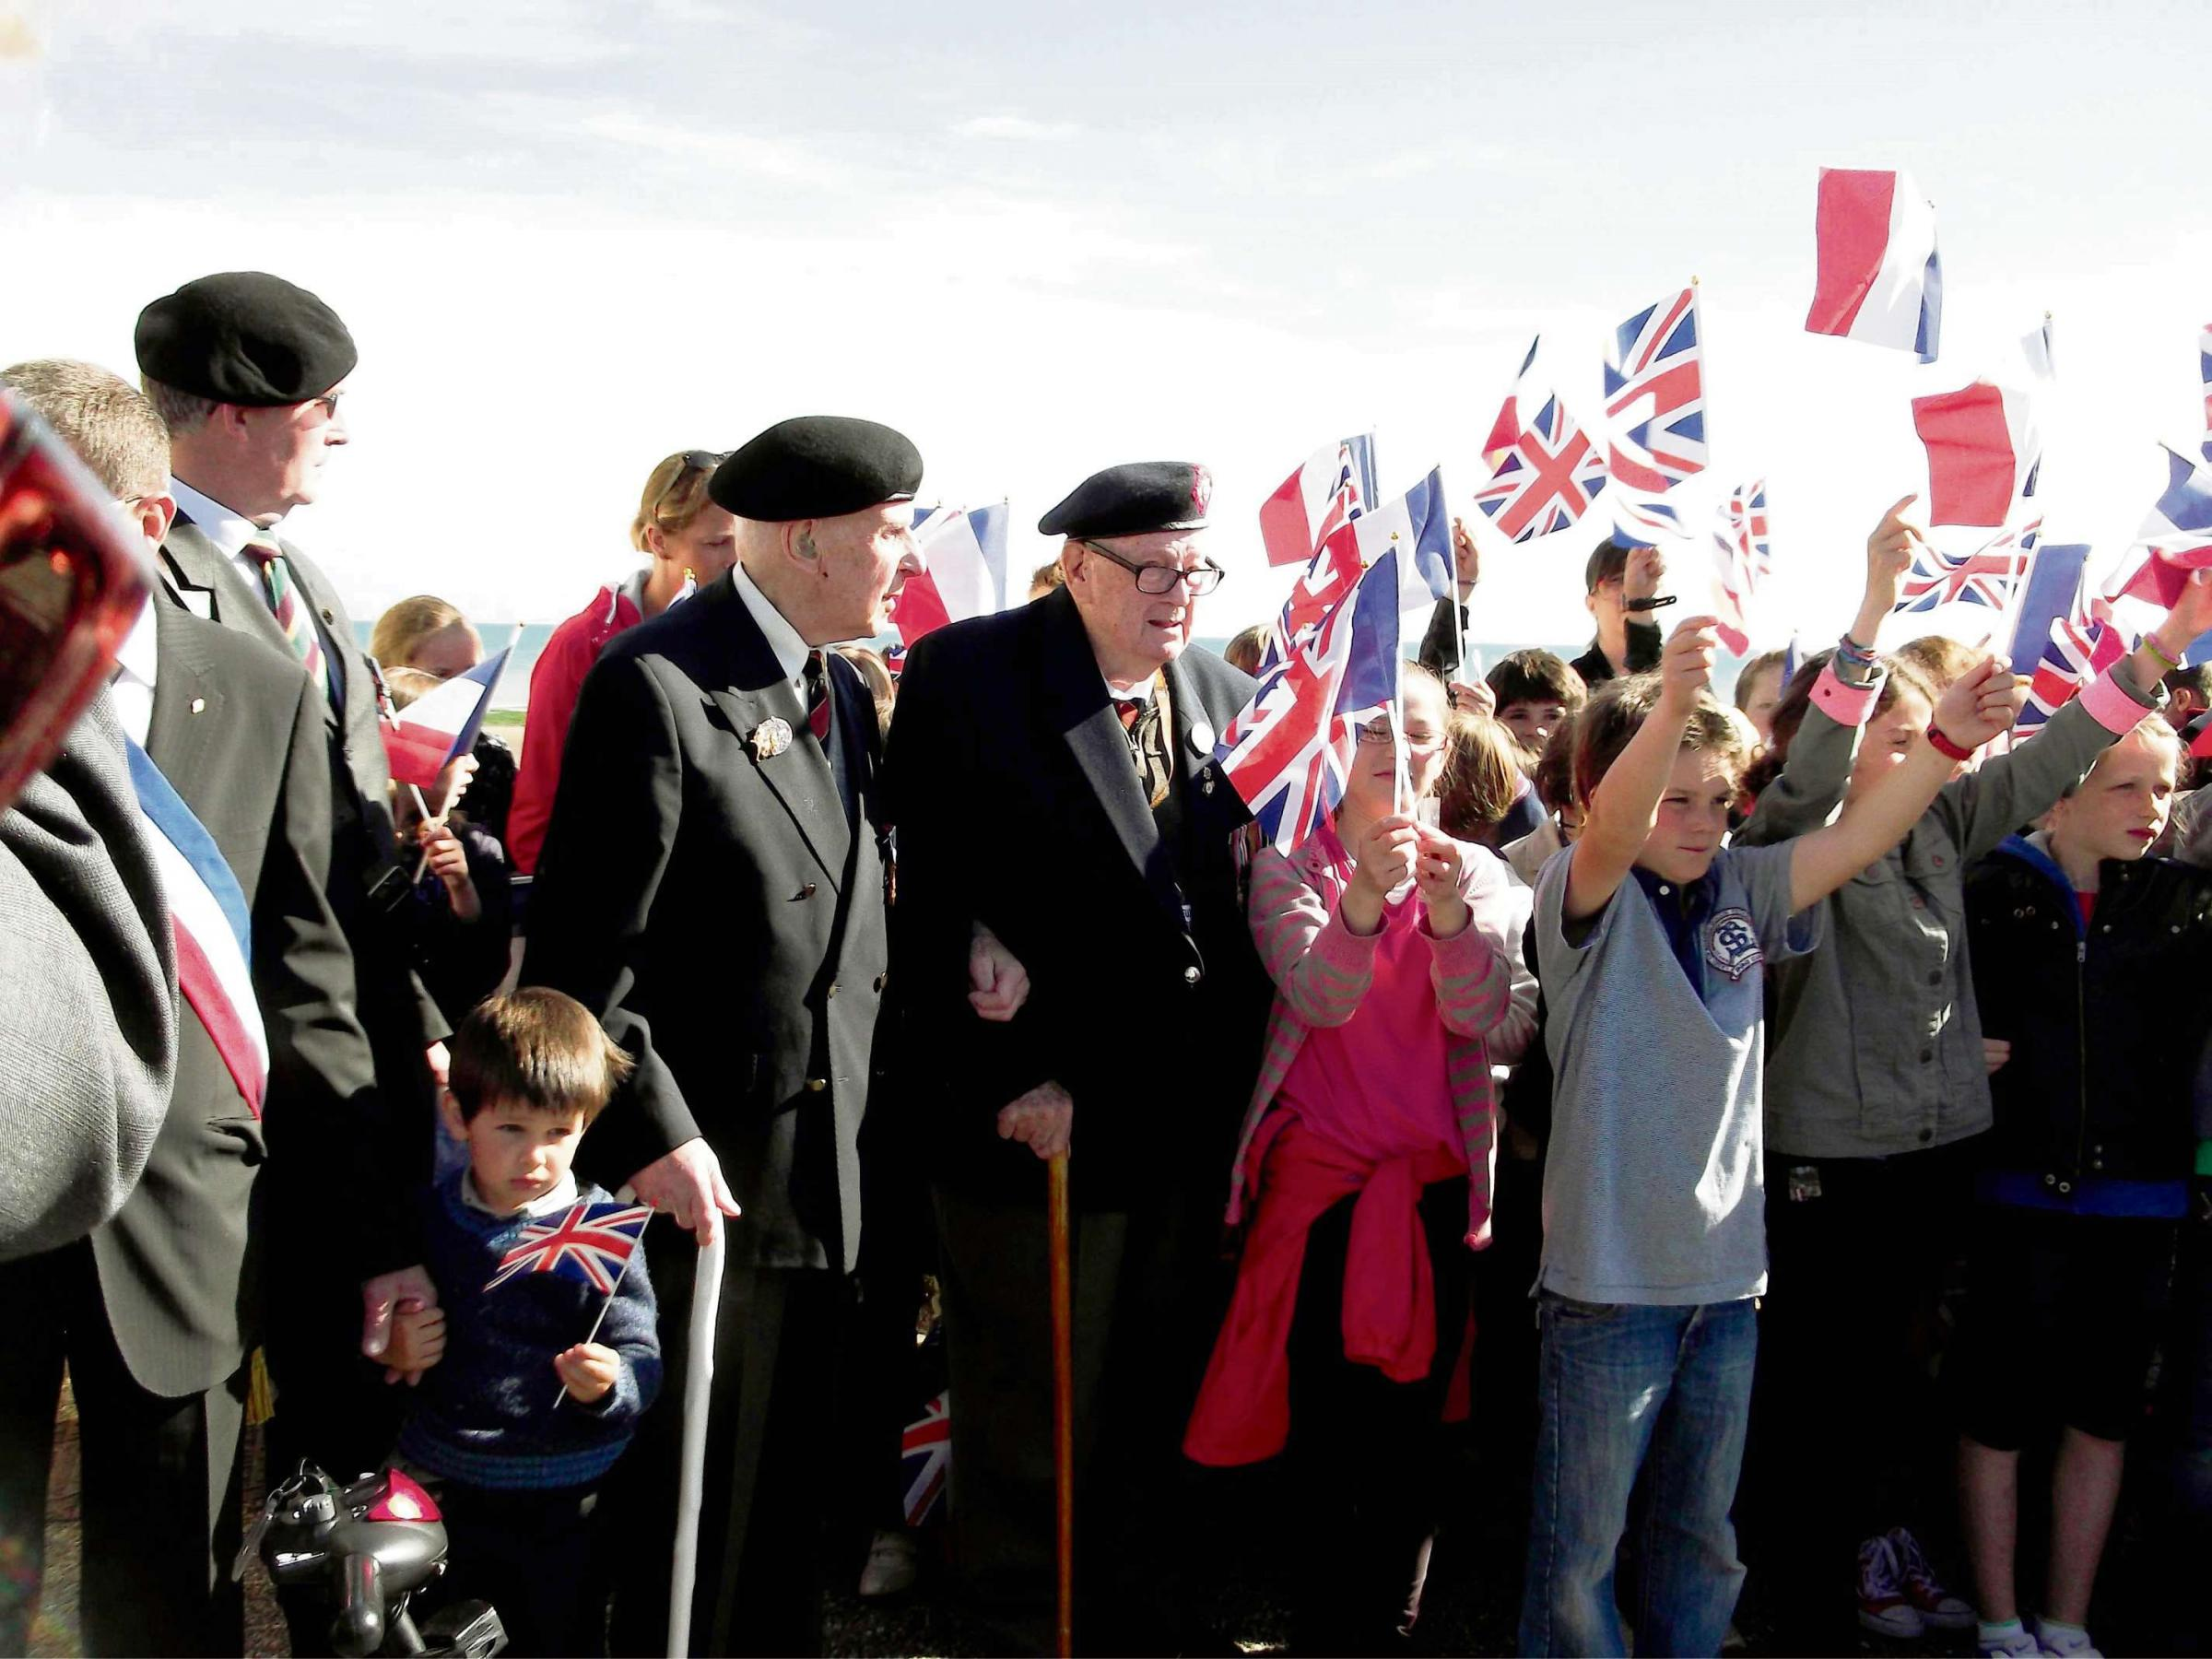 Veteran given hero's welcome on return to Normandy